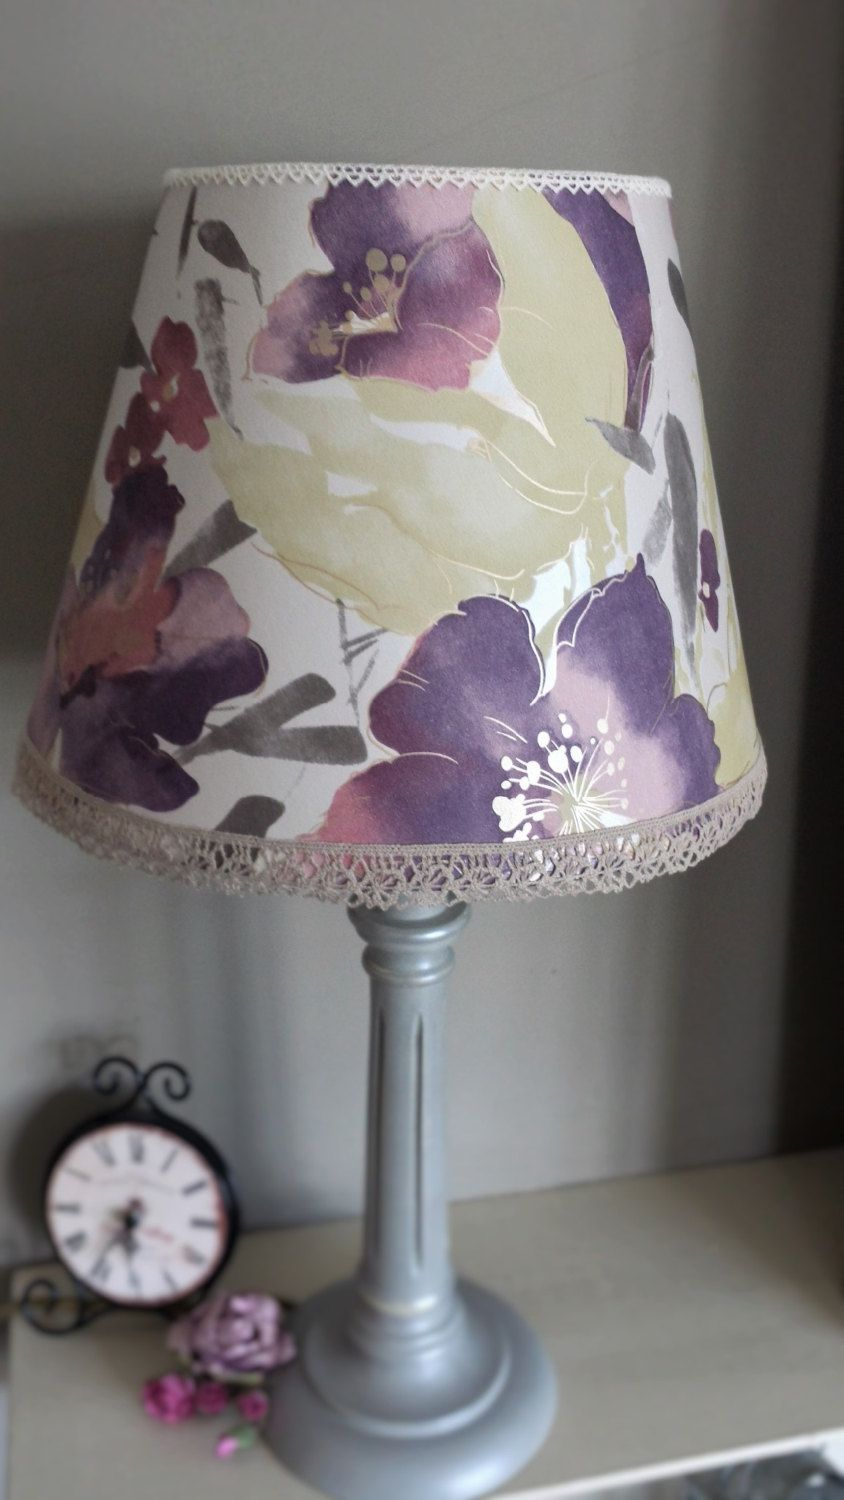 Lamp shadepurple floral shadewatercolour style flowers with lamp shadepurple floral shadewatercolour style flowers with metallic silver backgroundtable geotapseo Image collections